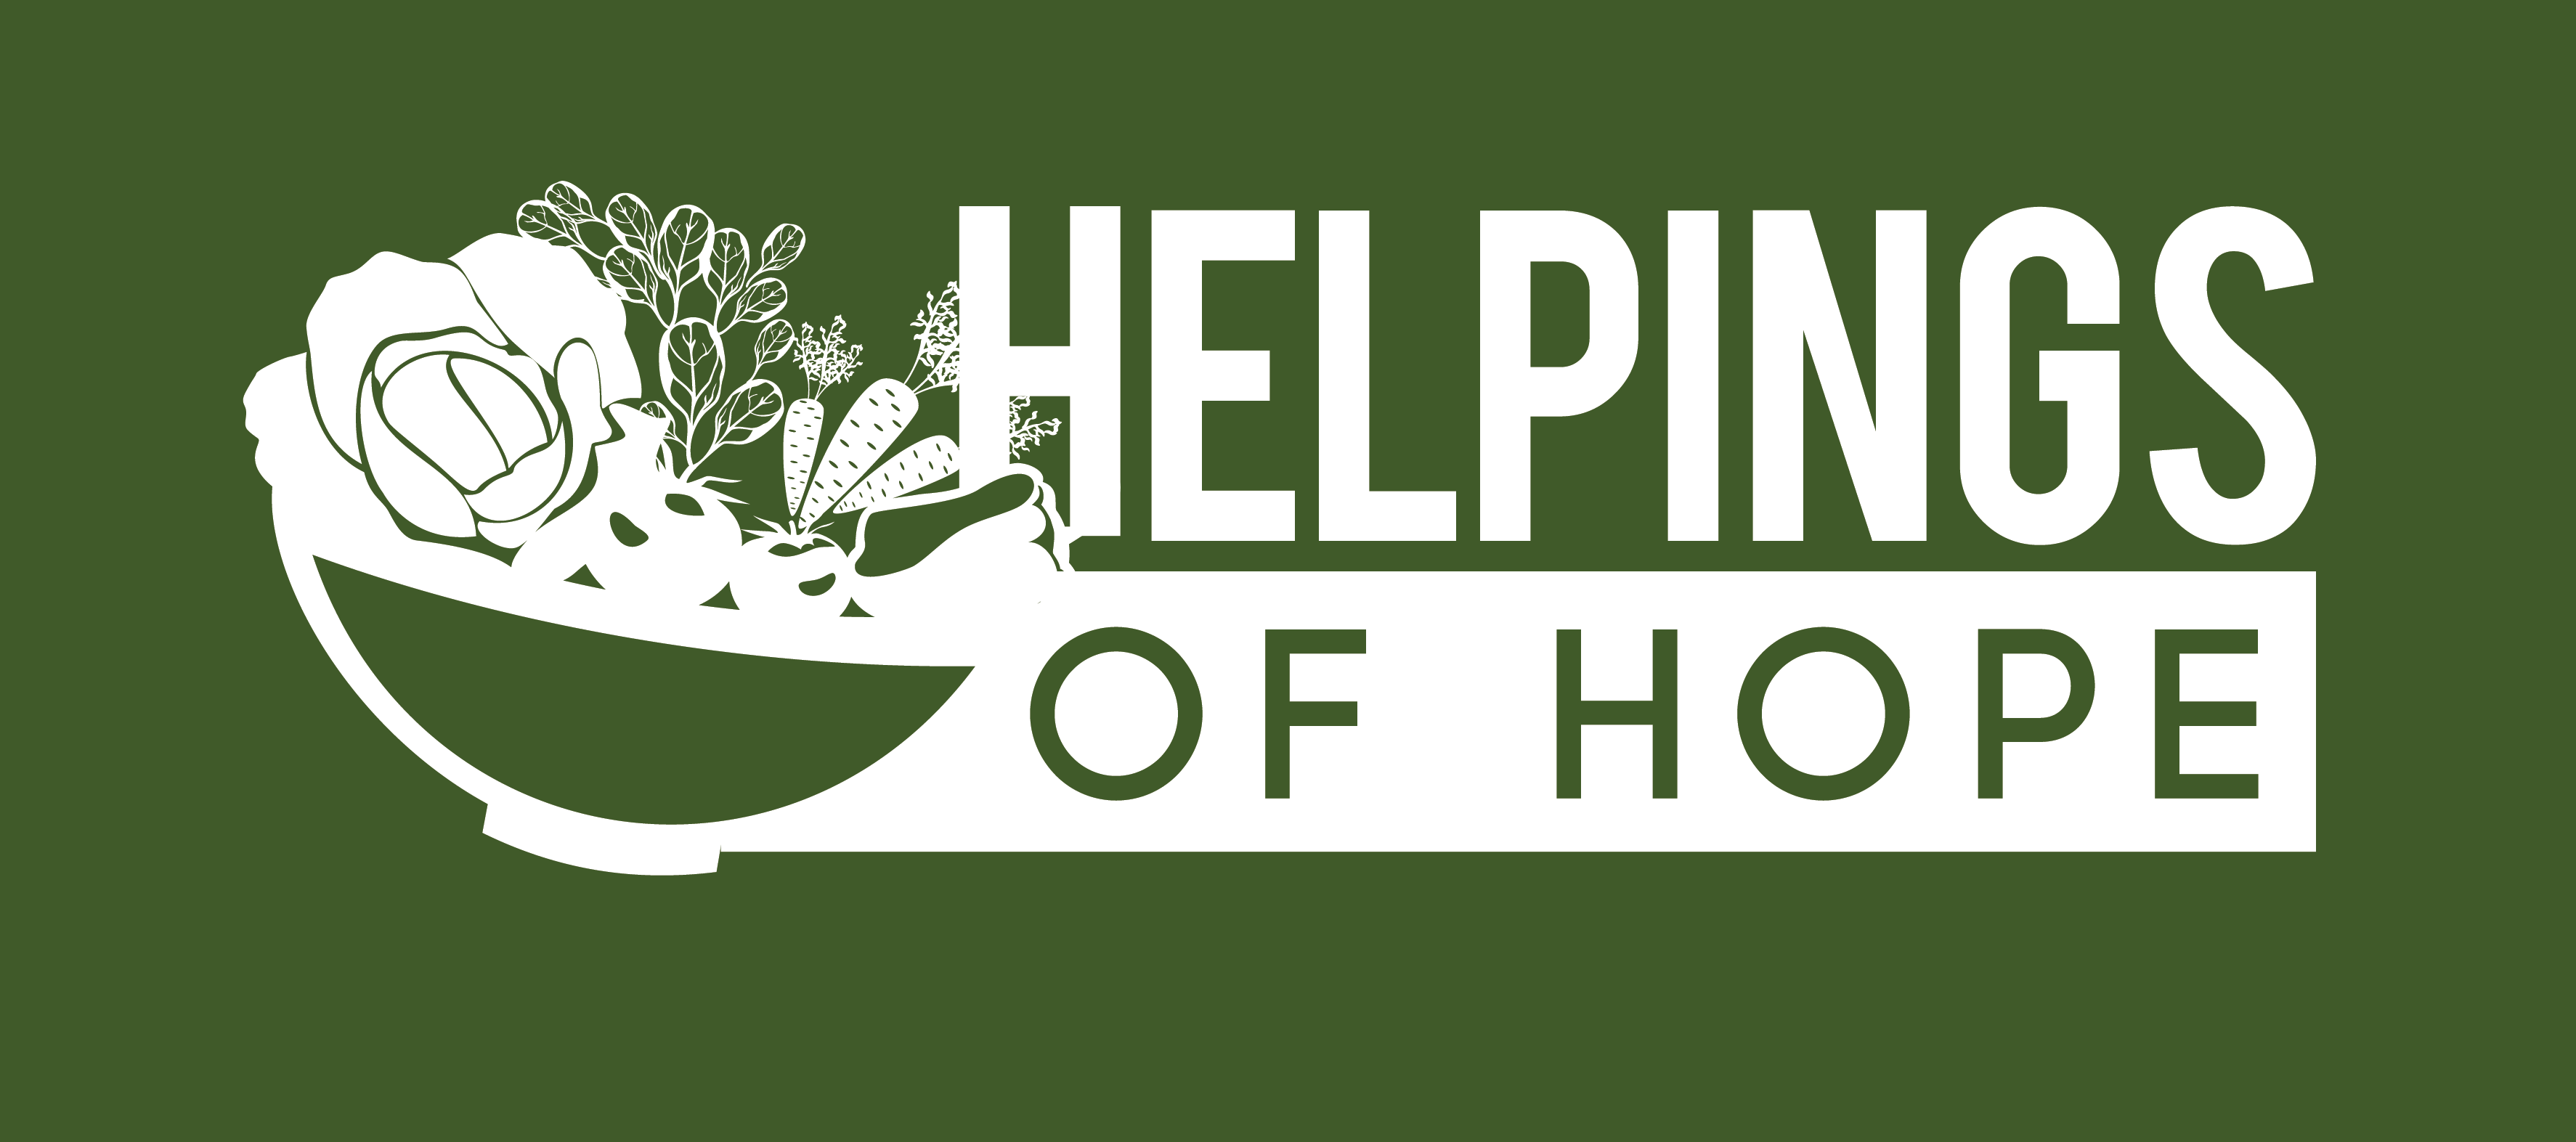 helpingsofhope_logo_horizontal_greenBG-e1434650822578